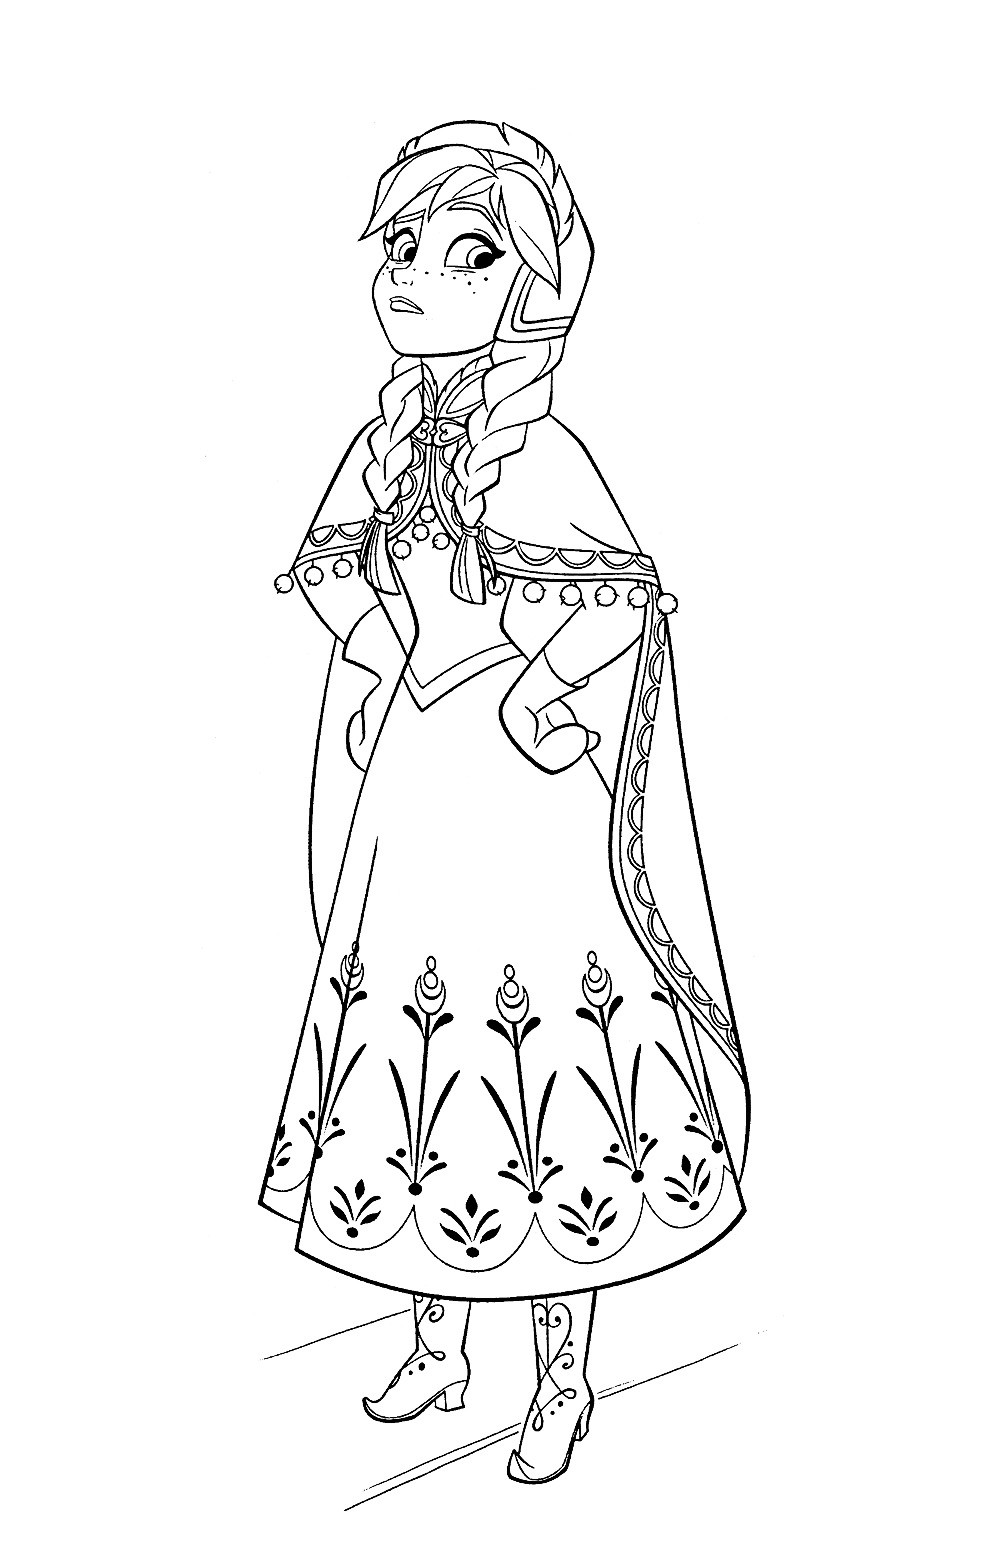 Best ideas about Disney Frozen Anna Free Printable Coloring Sheets . Save or Pin Anna Coloring Pages coloringsuite Now.